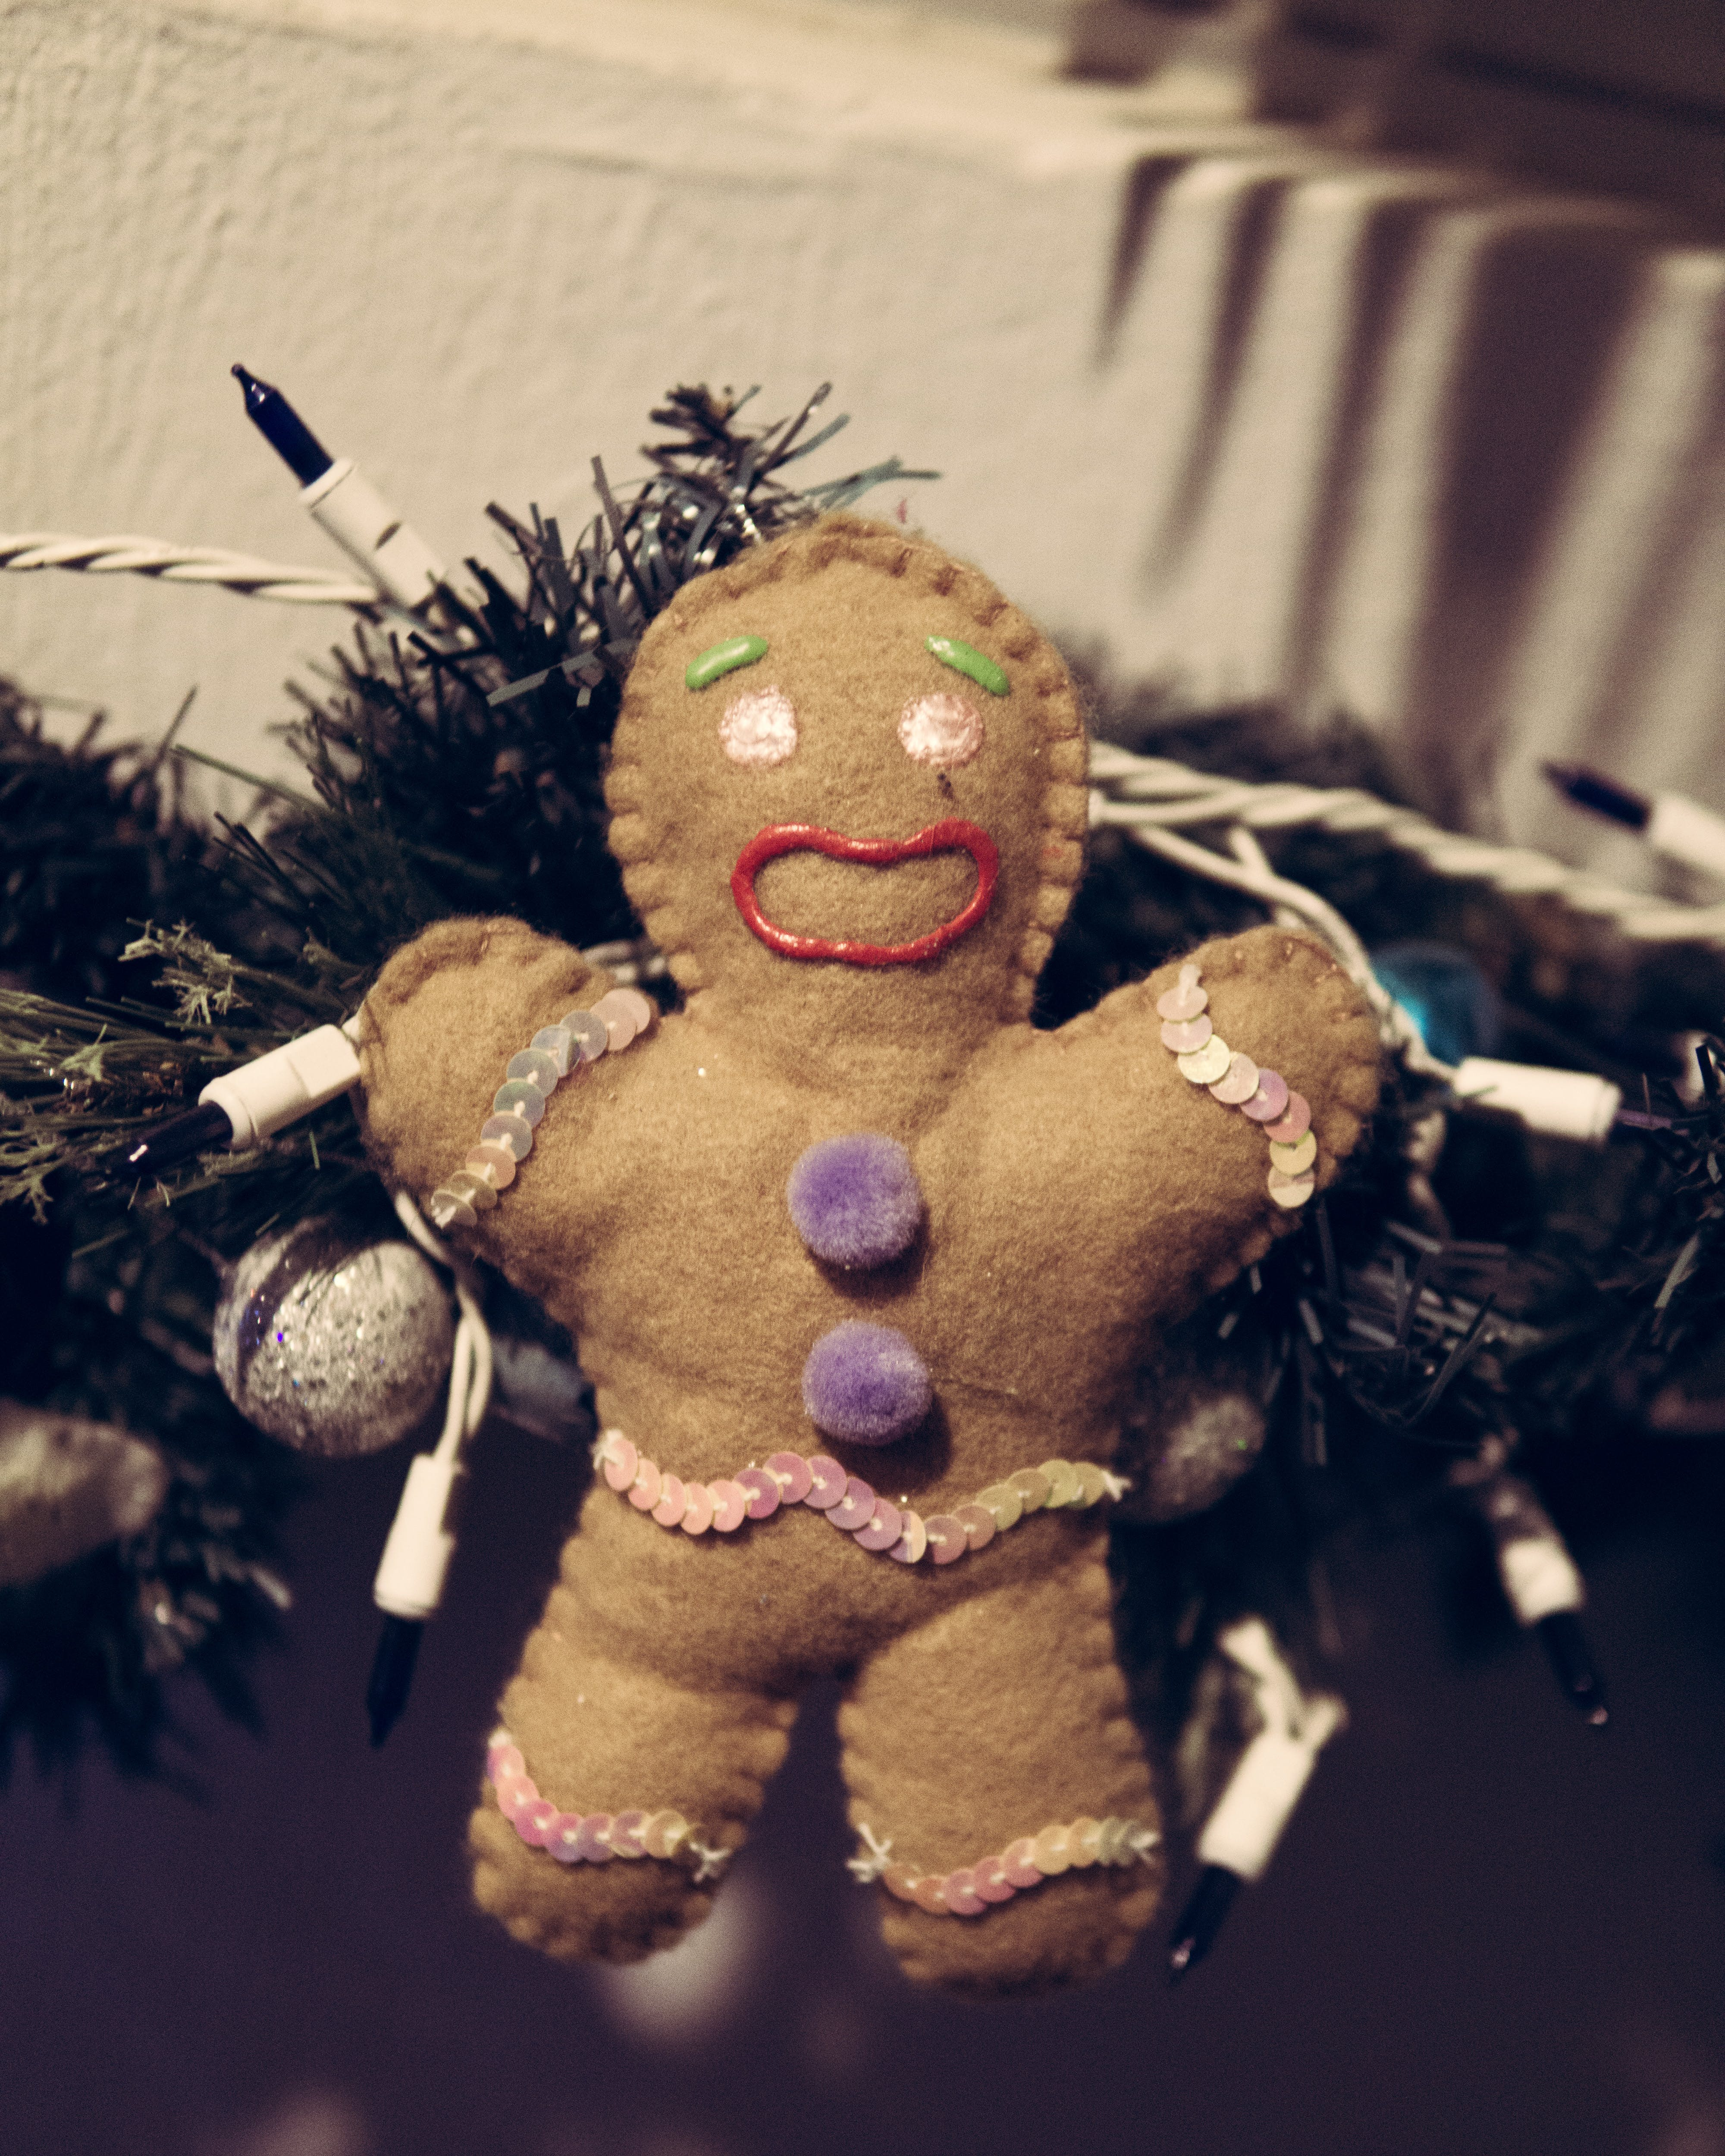 Free stock photo of christmas cookies, doll, gingerbread